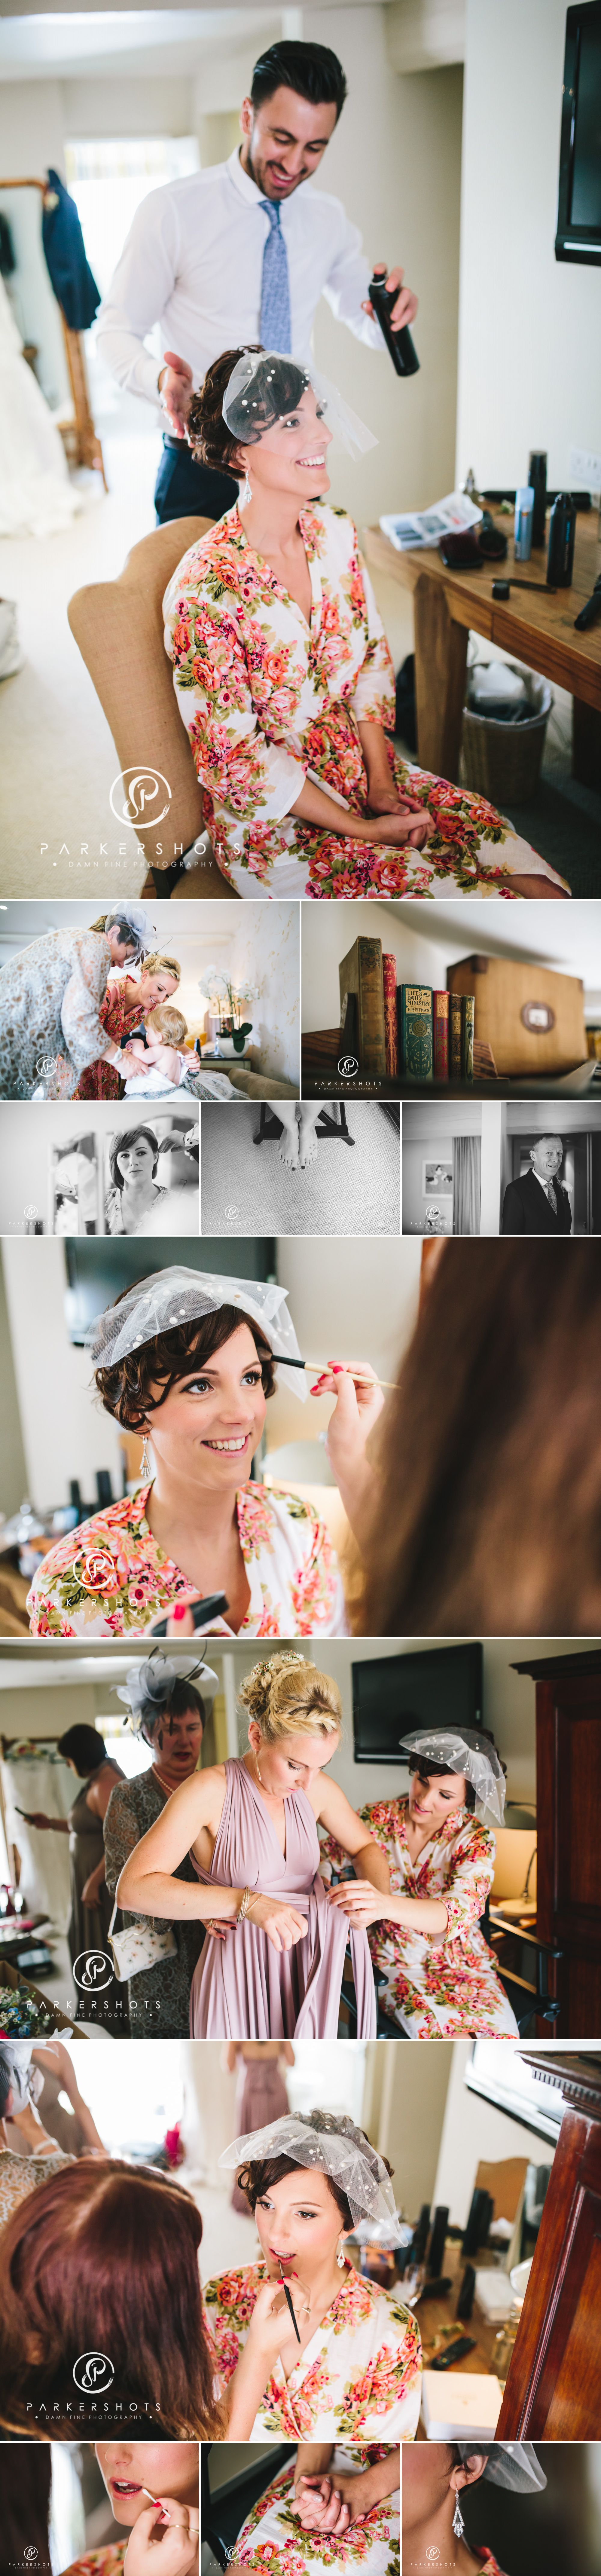 The_George_In_Rye_Wedding_Photographer 3